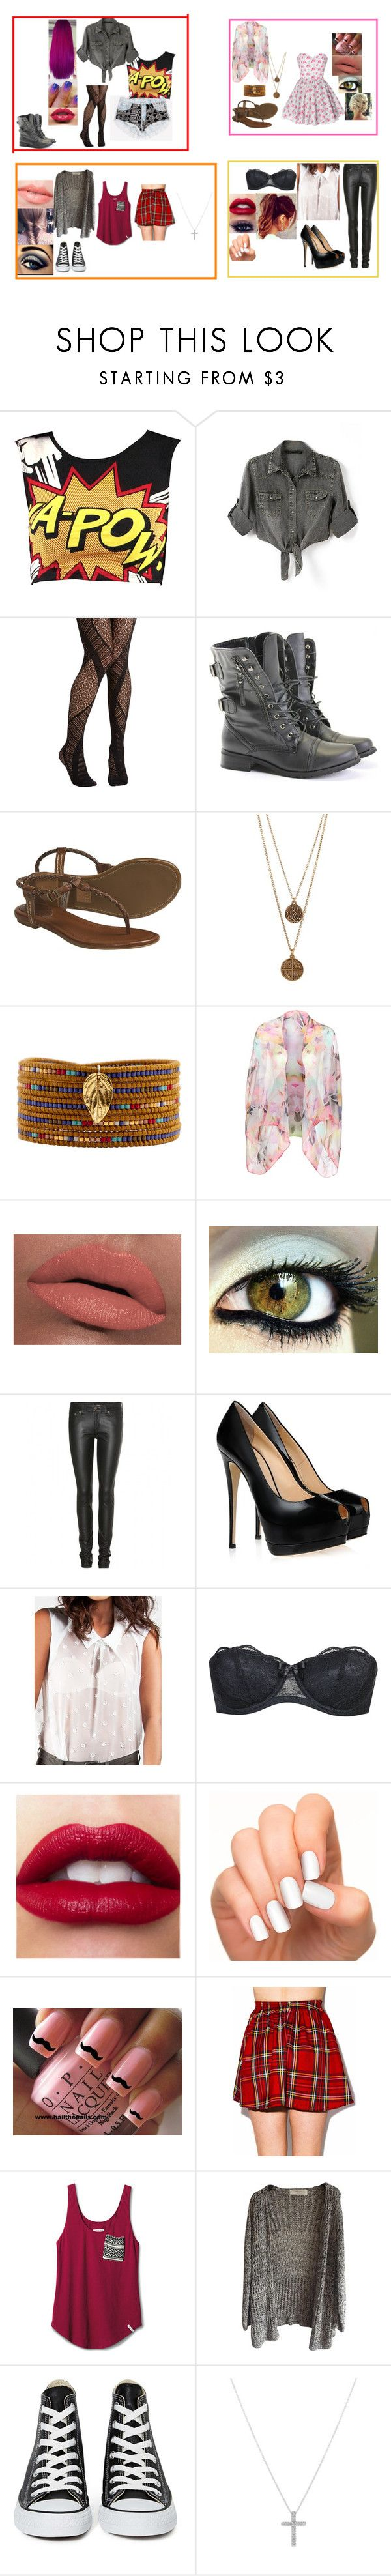 """""""I don't find my style...I wear all this style"""" by glee2shake ❤ liked on Polyvore featuring Chicnova Fashion, Rocio, Frye, Bee Charming, Chan Luu, Ted Baker, LORAC, Yves Saint Laurent, Giuseppe Zanotti and Agent Provocateur"""